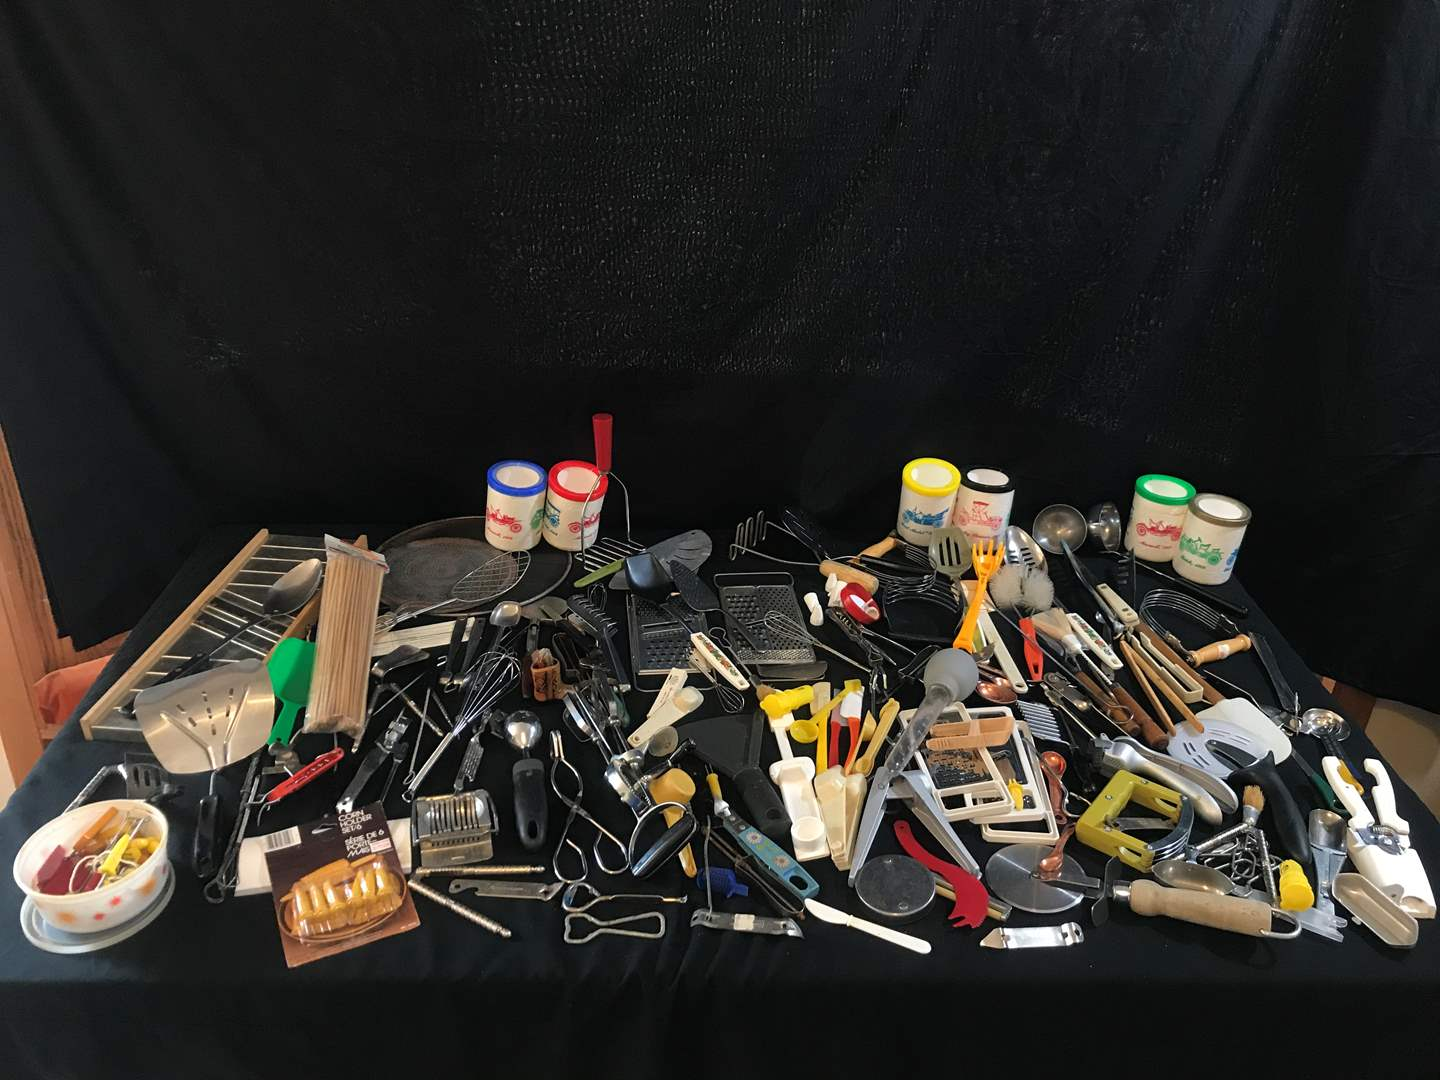 Lot # 69 - Large Lot of Kitchen Utensils: Measuring Spoons, Spatulas, Can Openers, Potato Masher & More.. (main image)